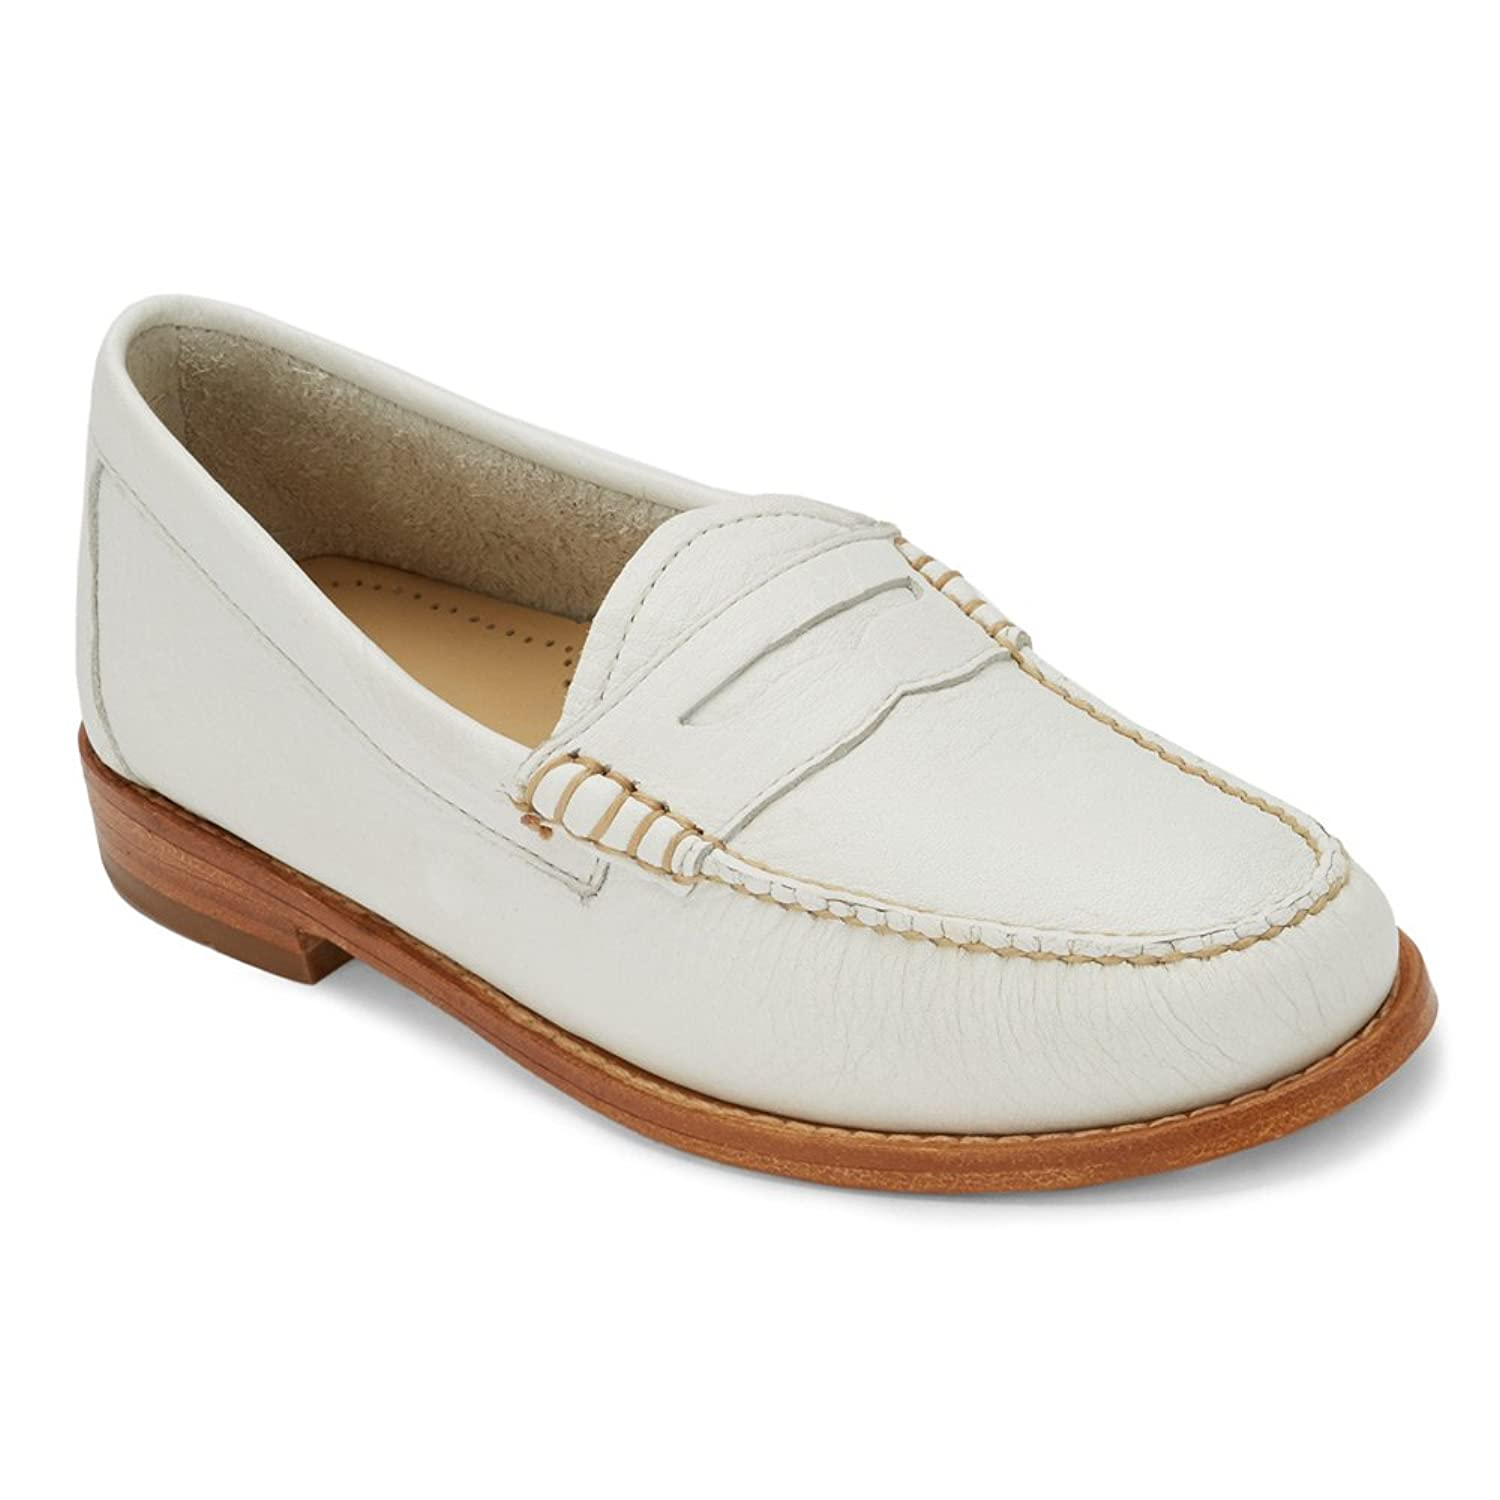 G.H. Bass & Co. Women's Whitney Penny Loafer, White, 6 M US